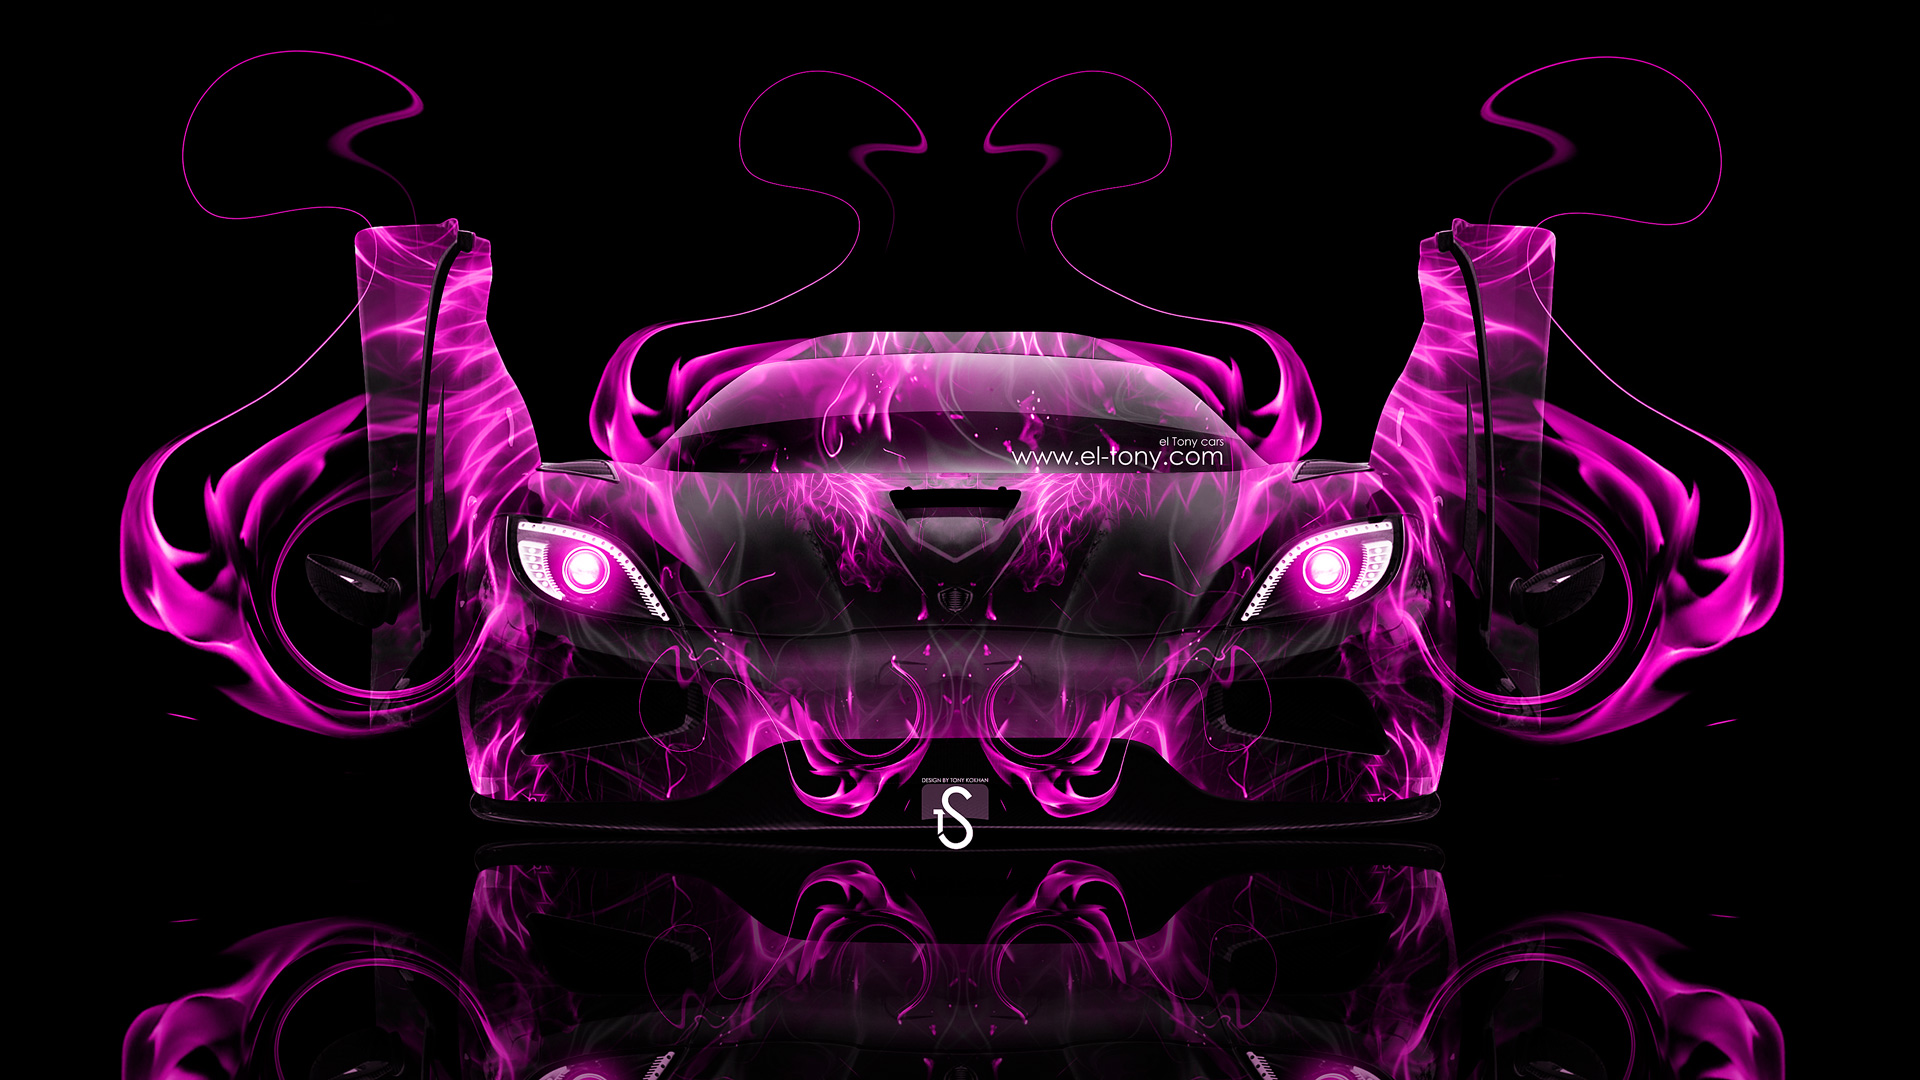 Attractive Koenigsegg Agera Open Doors Pink Fire Abstract Car